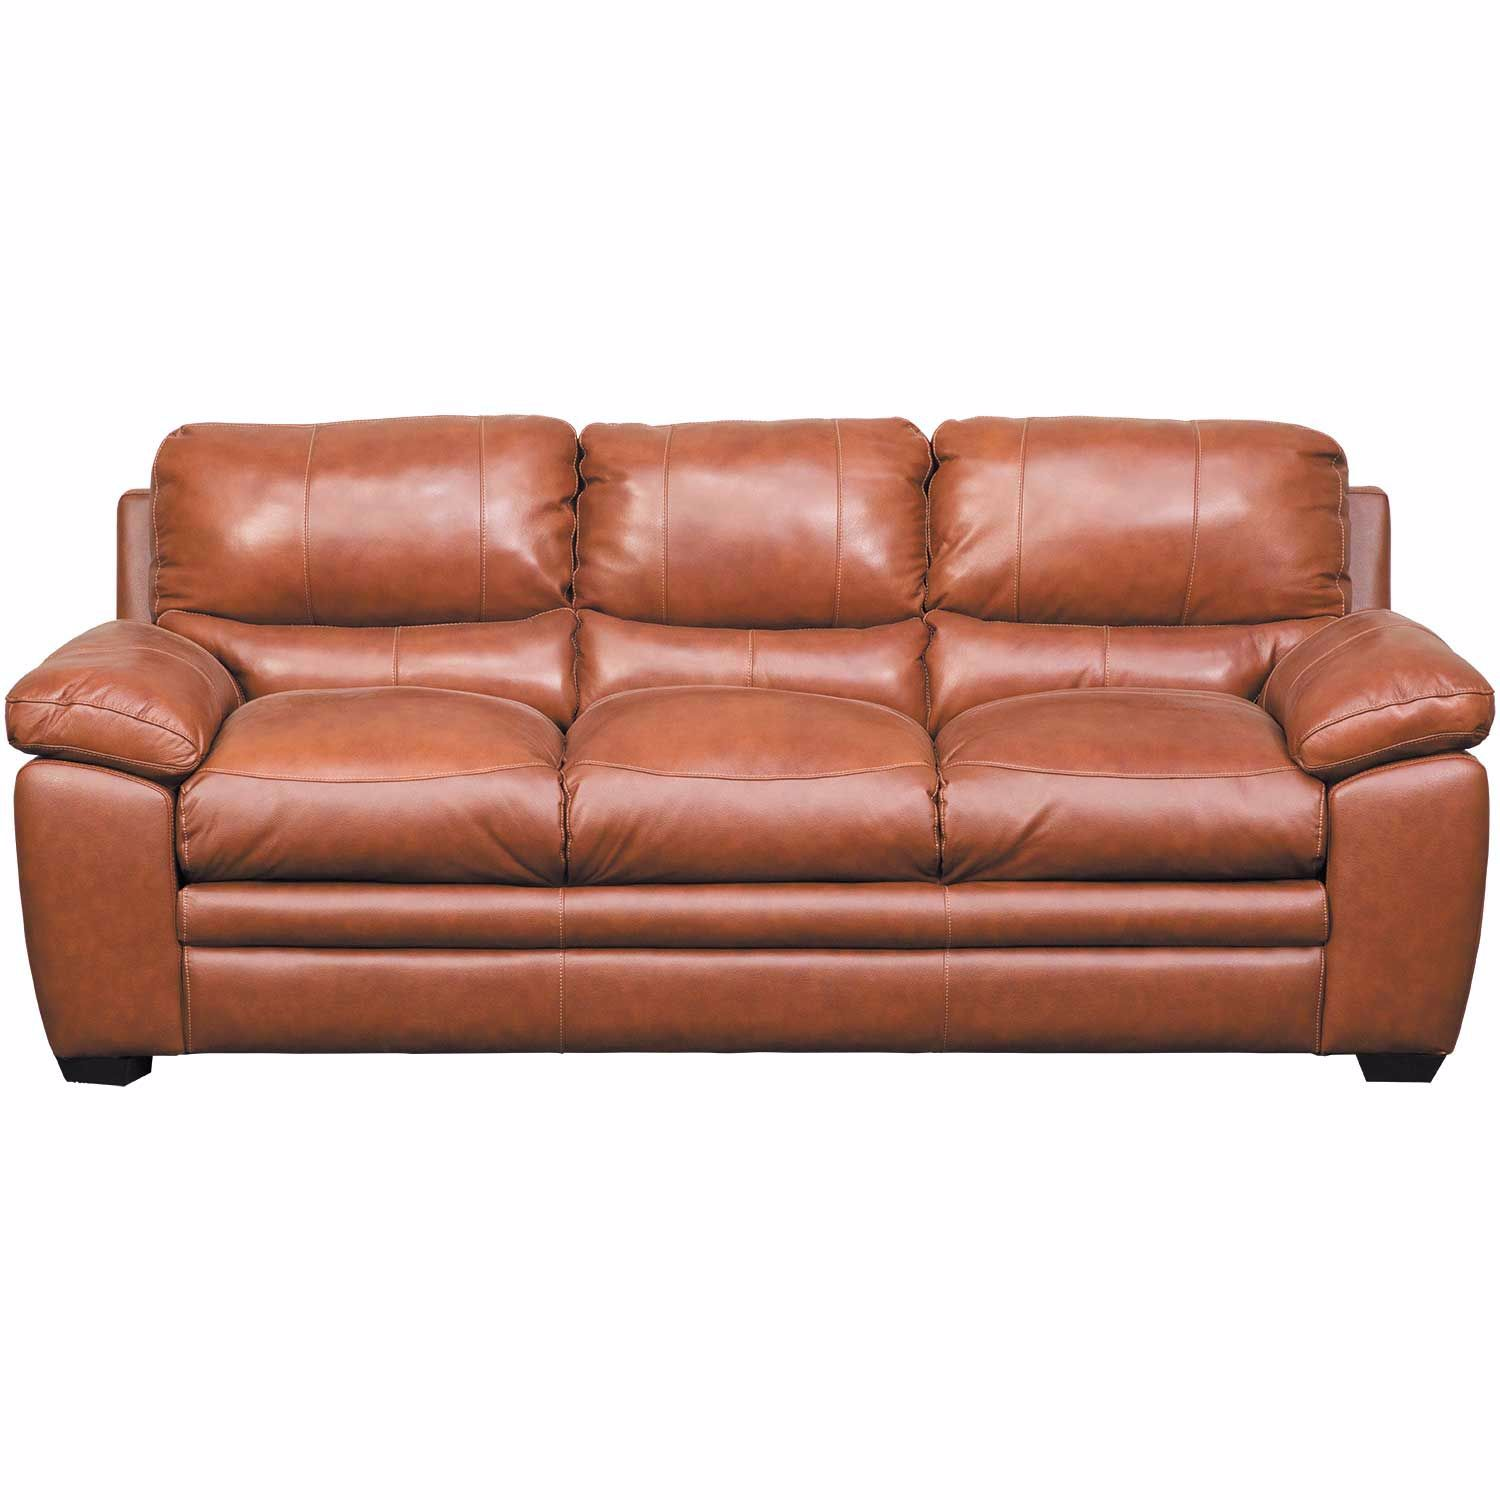 Logan Tobacco Brown Leather Sofa